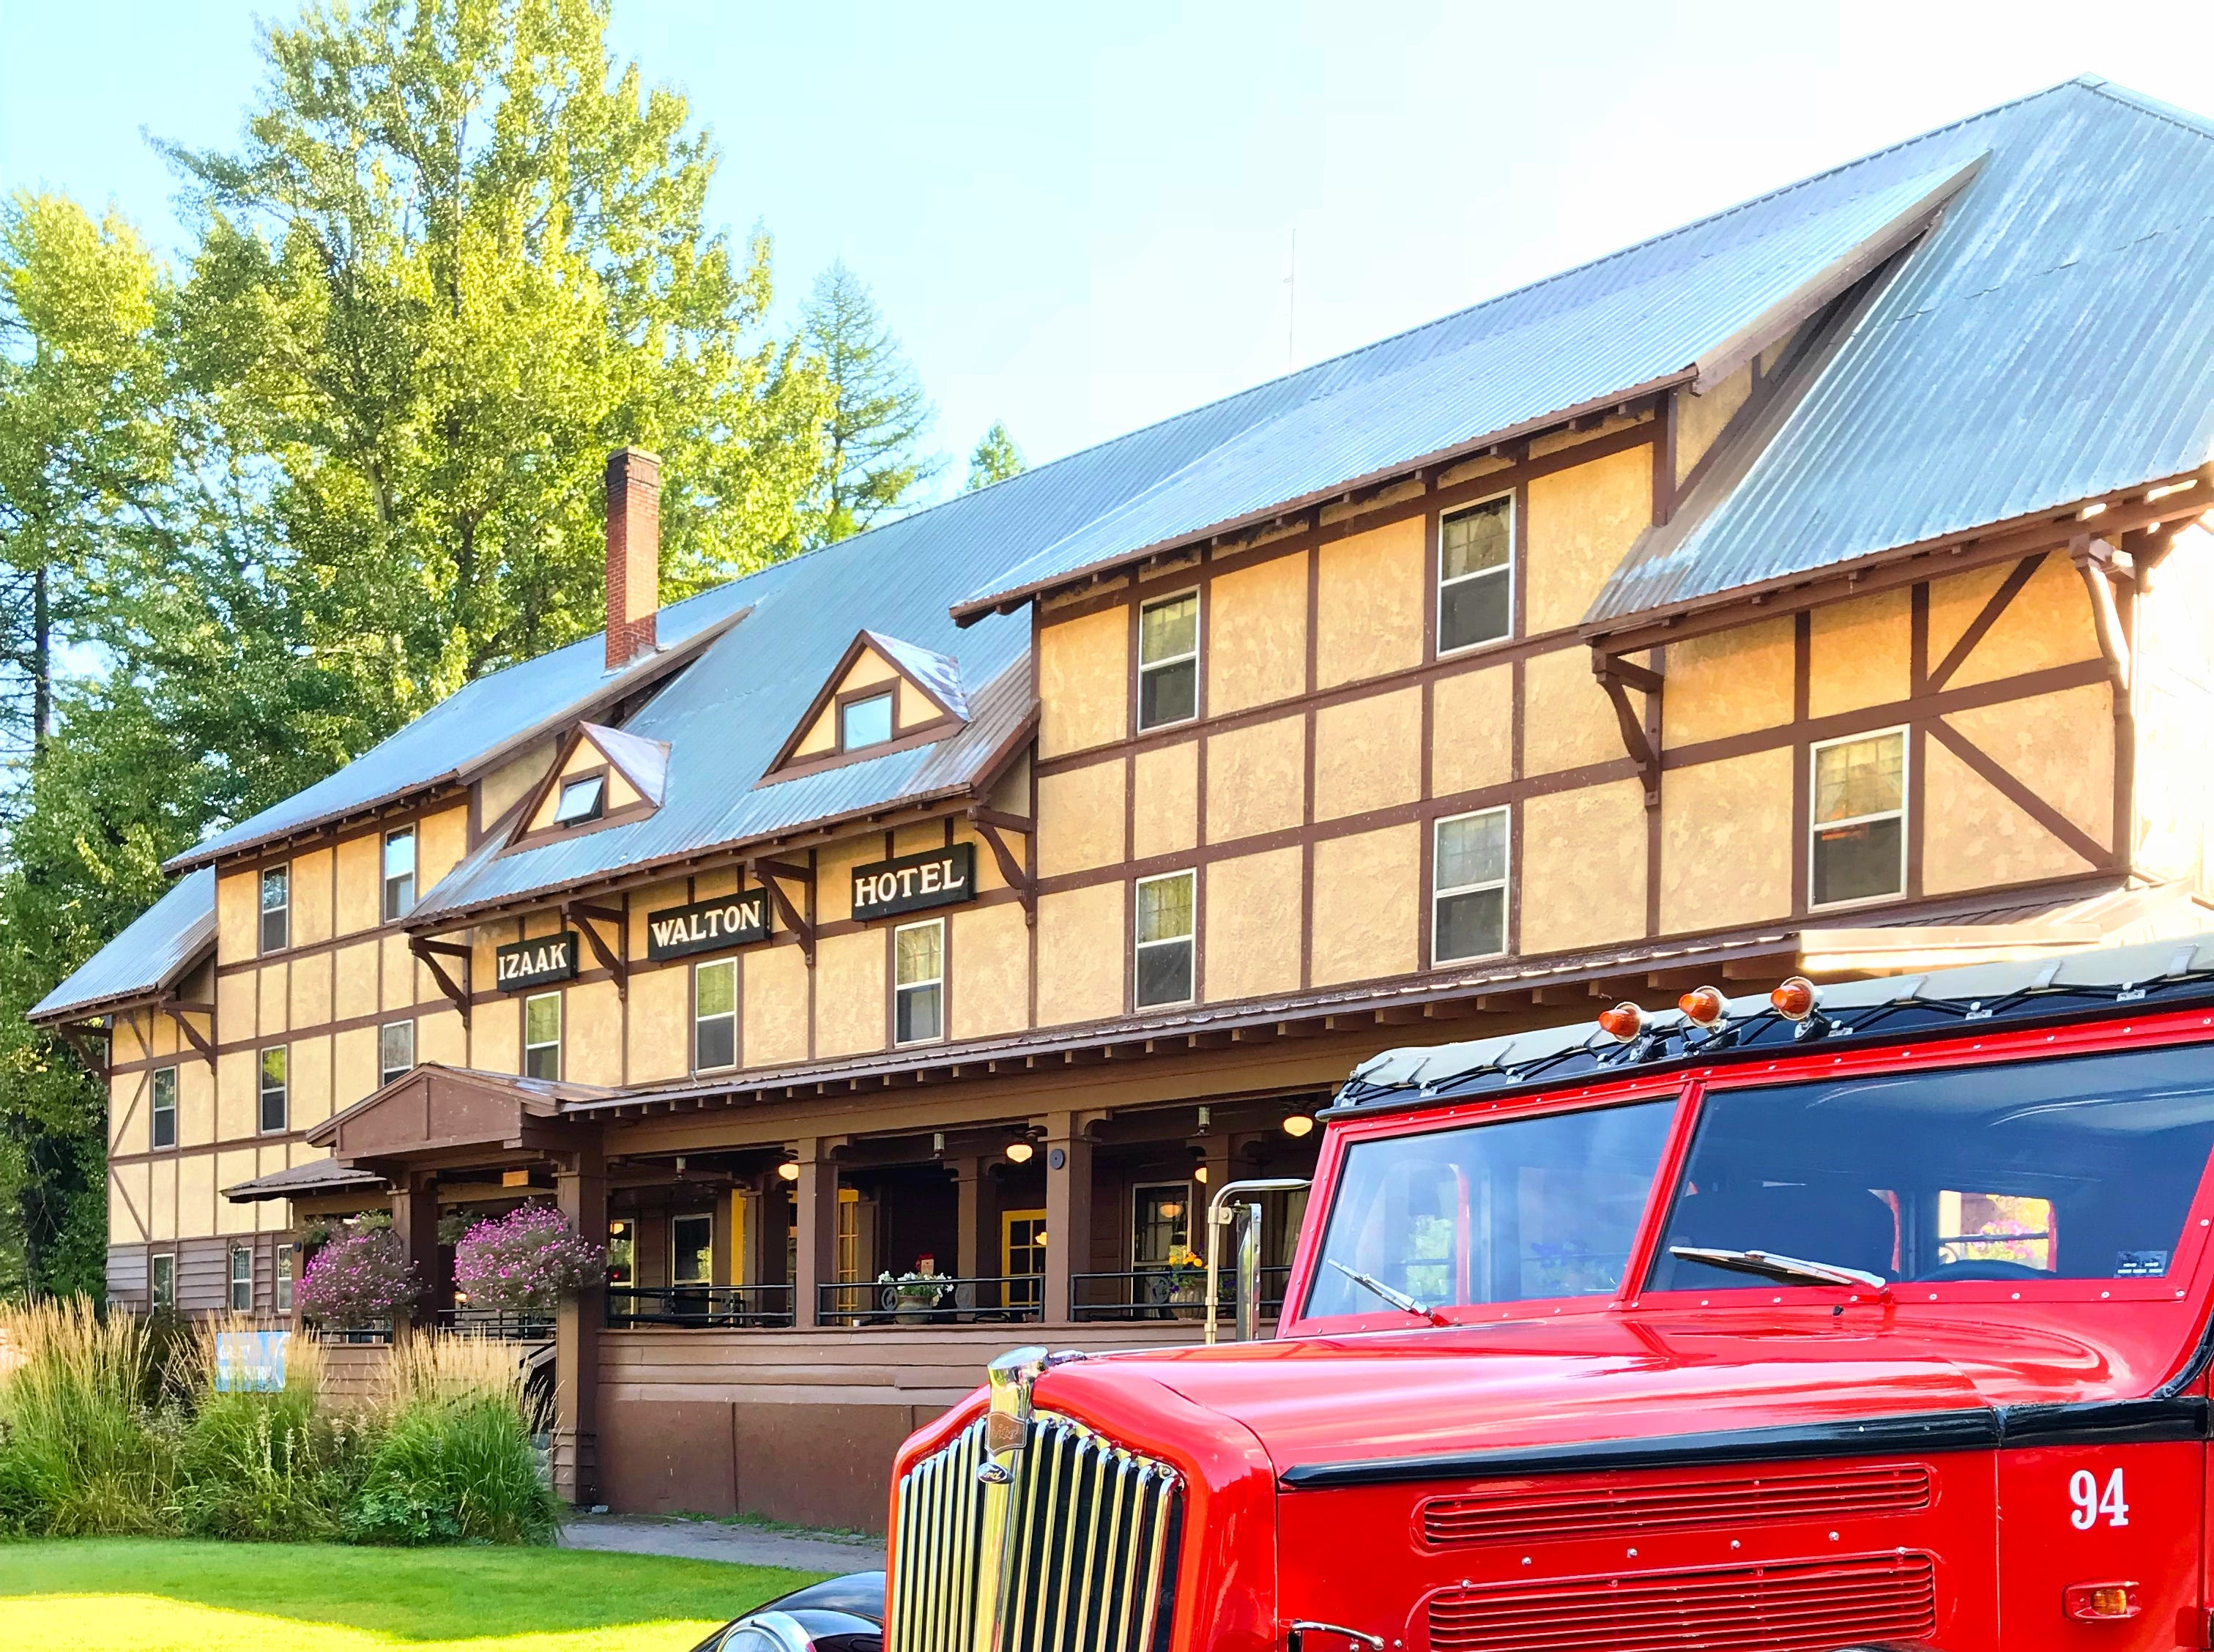 An iconic red bus is parked at the Izaak Walton Inn near Glacier National Park